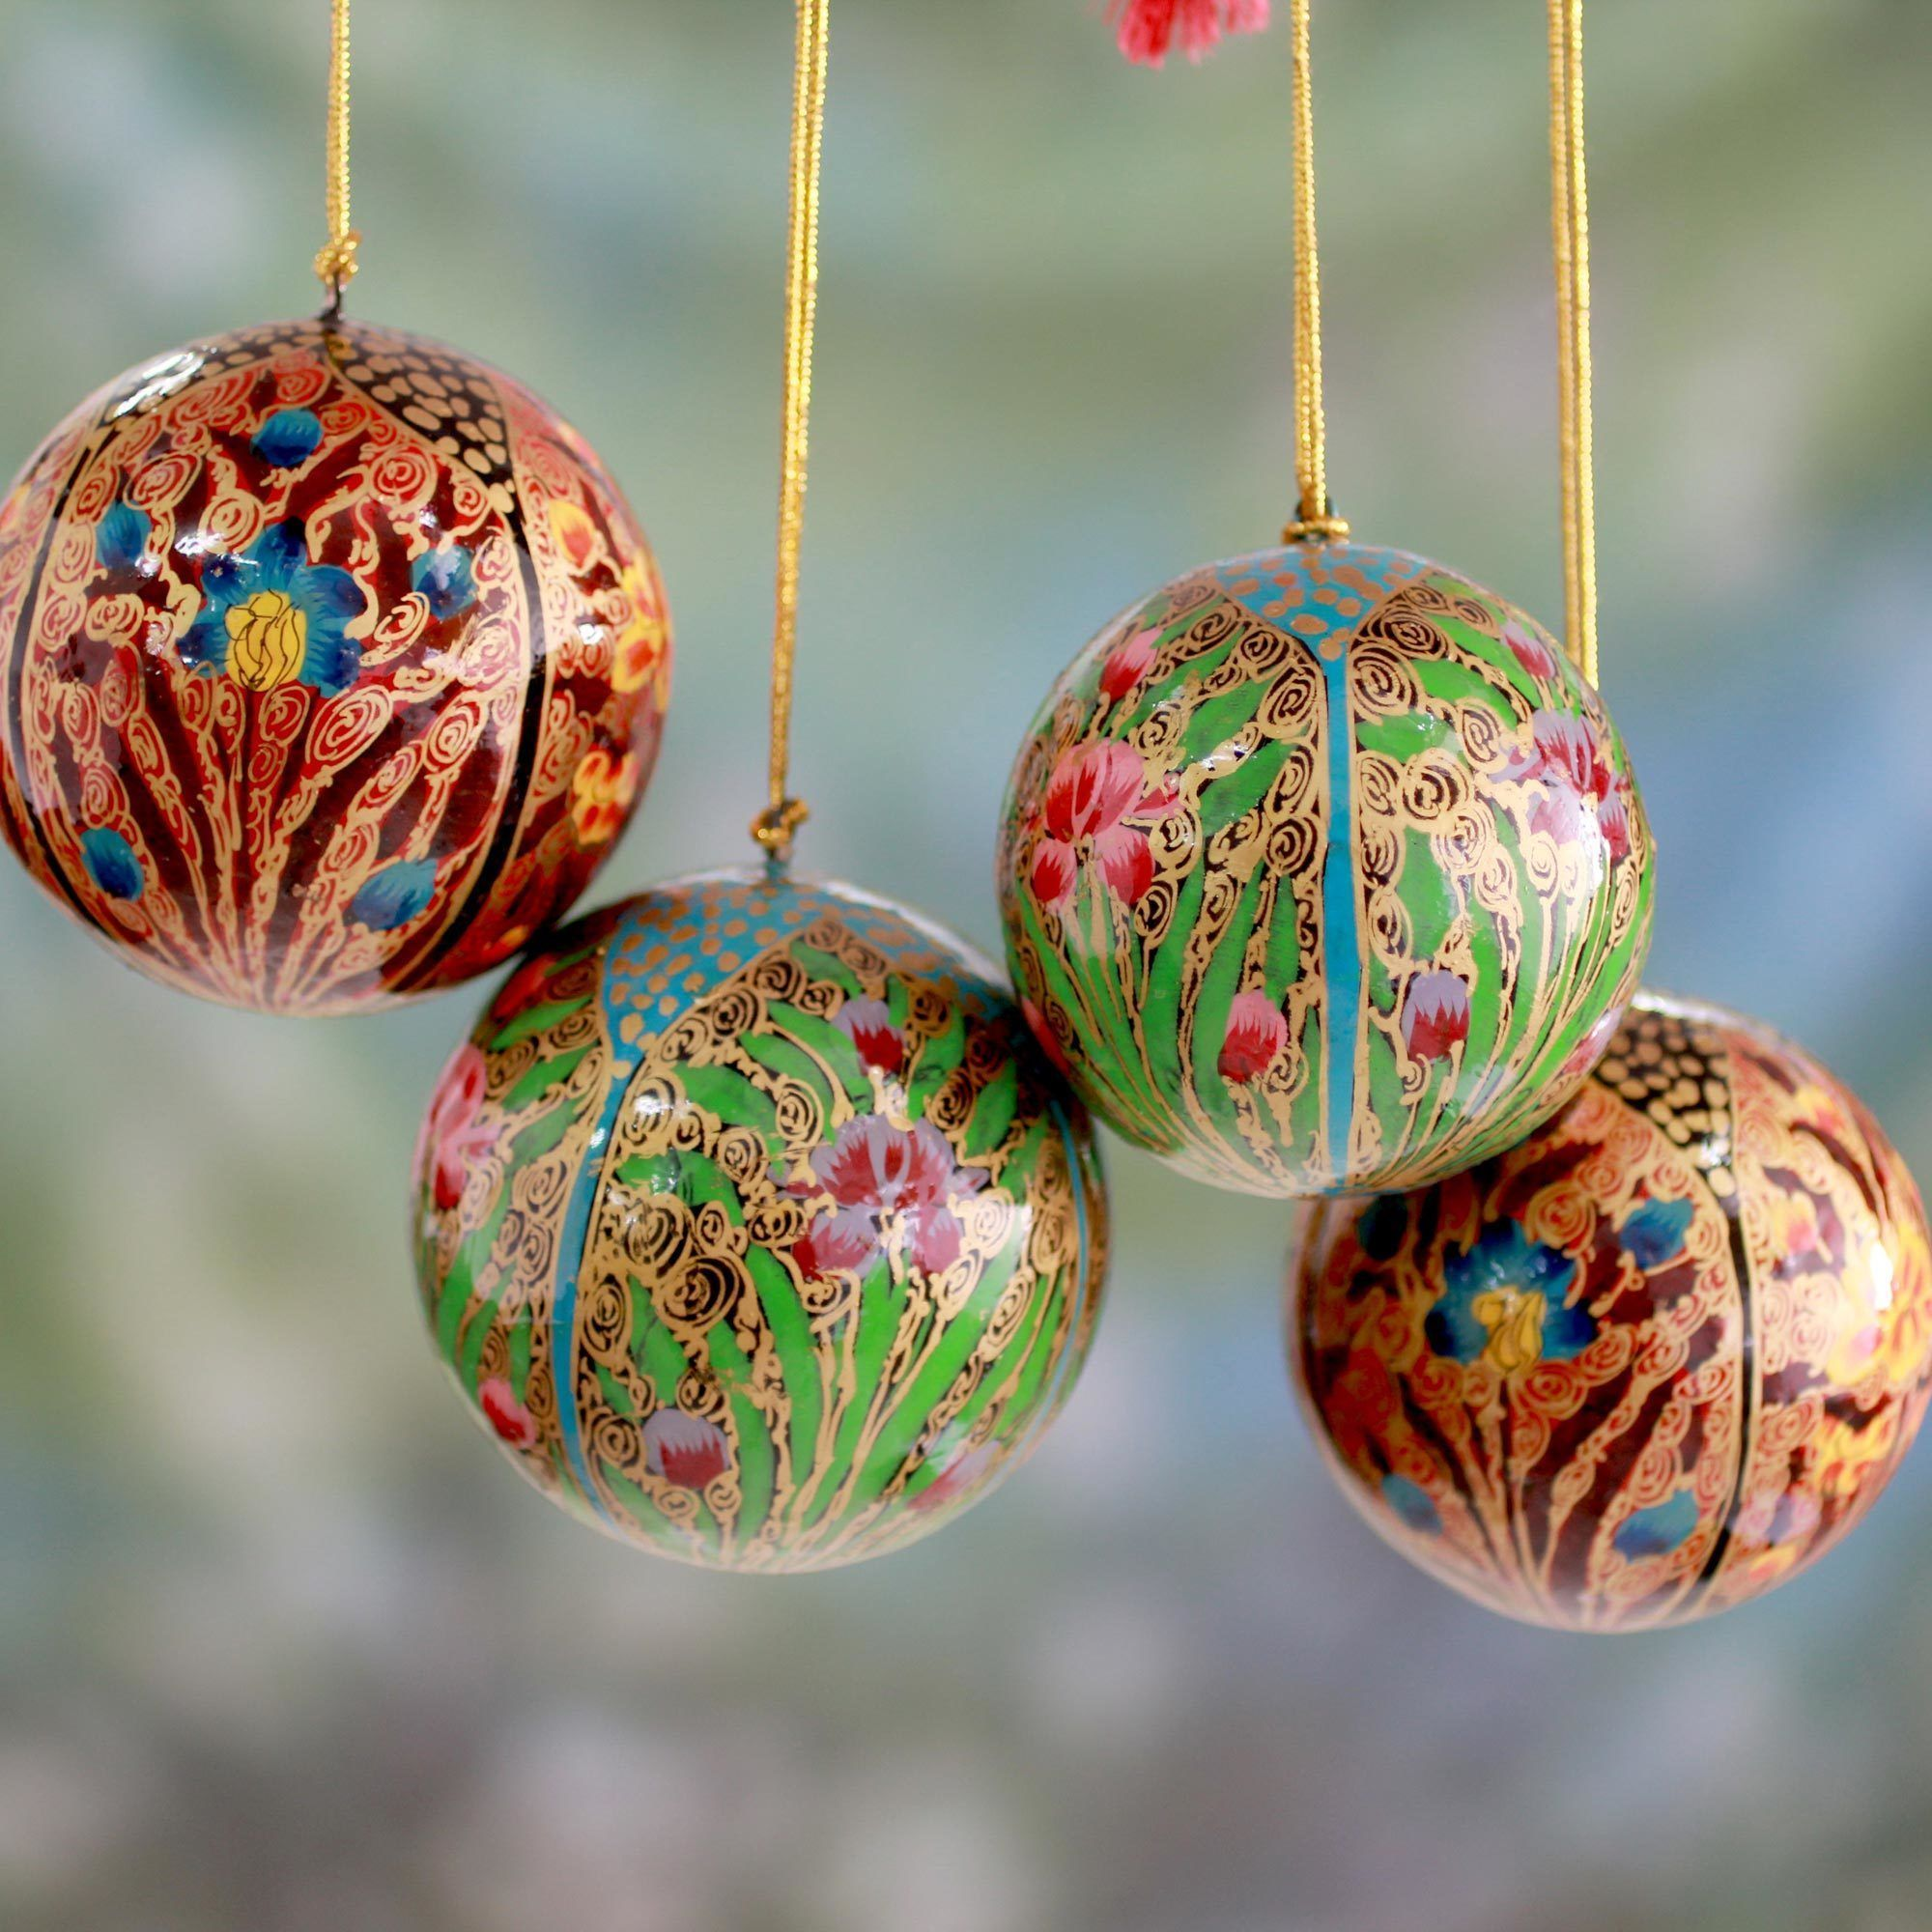 Overstock Com Online Shopping Bedding Furniture Electronics Jewelry Clothing More Handmade Christmas Christmas Ornaments Christmas Ornament Sets